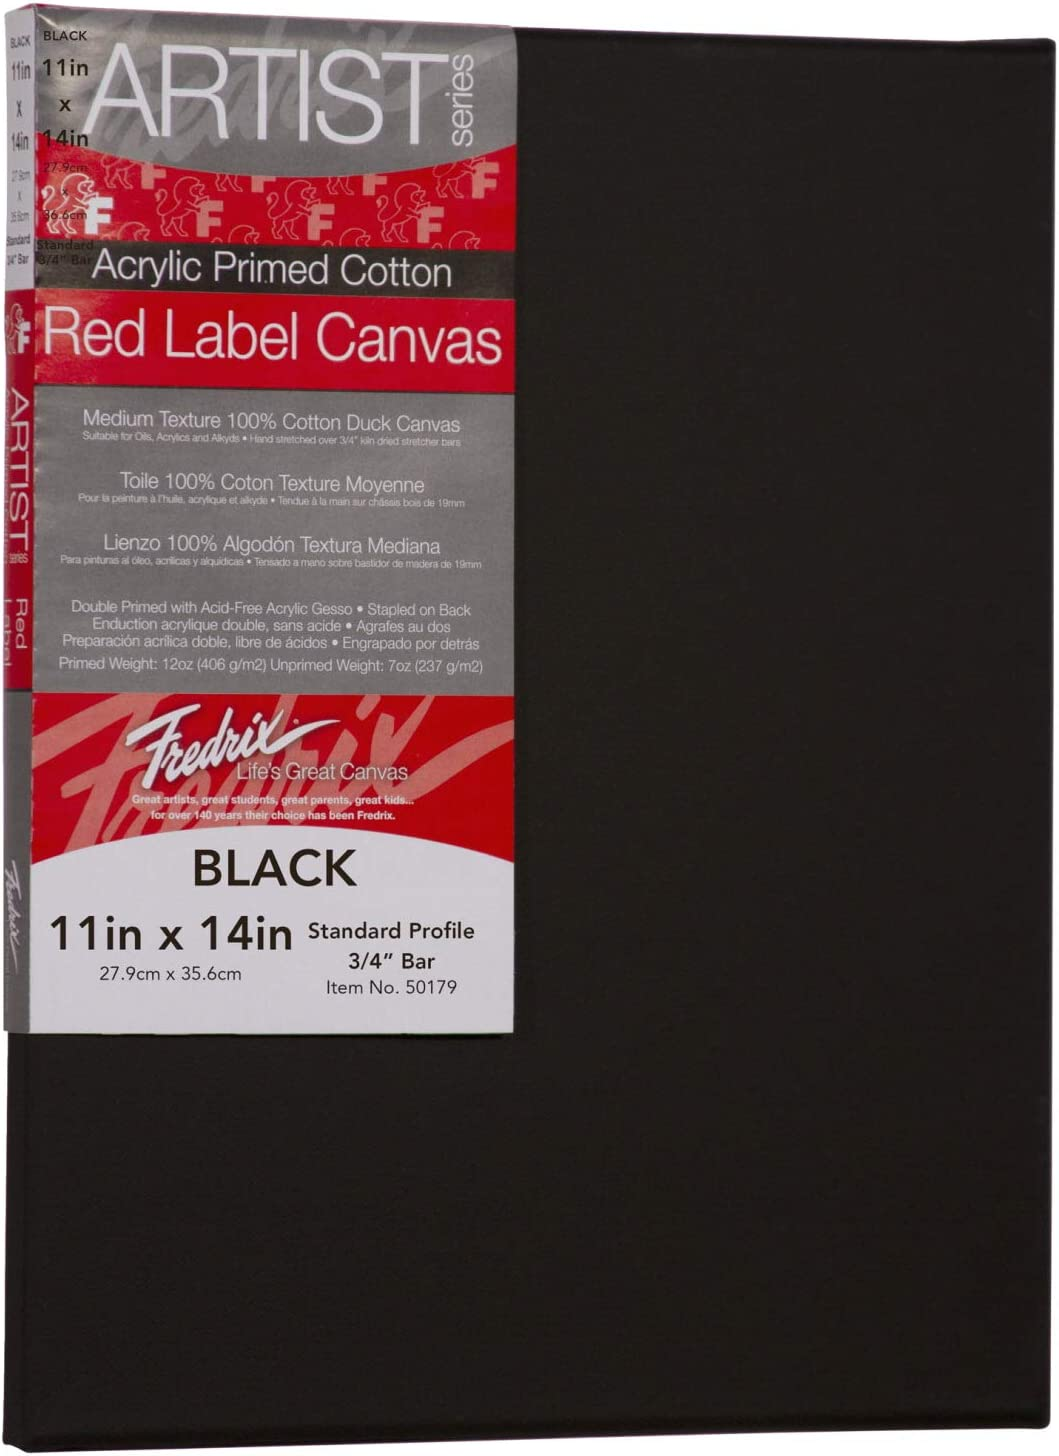 x 14 in each Fredrix Red Label Black Stretched Cotton Canvas 11 in